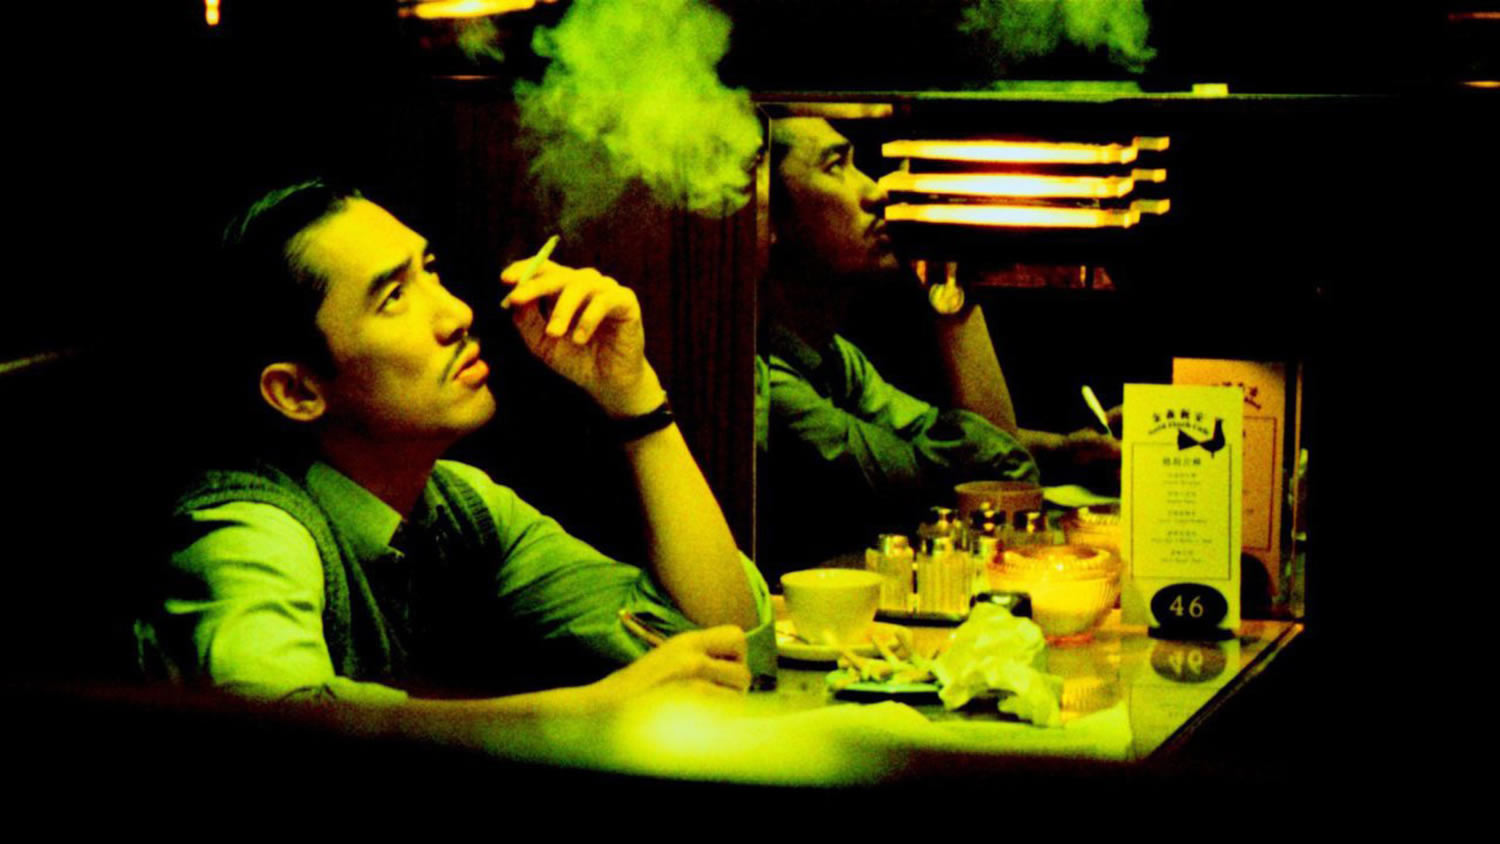 man smoking, yellow neon lighting, 2046 movie